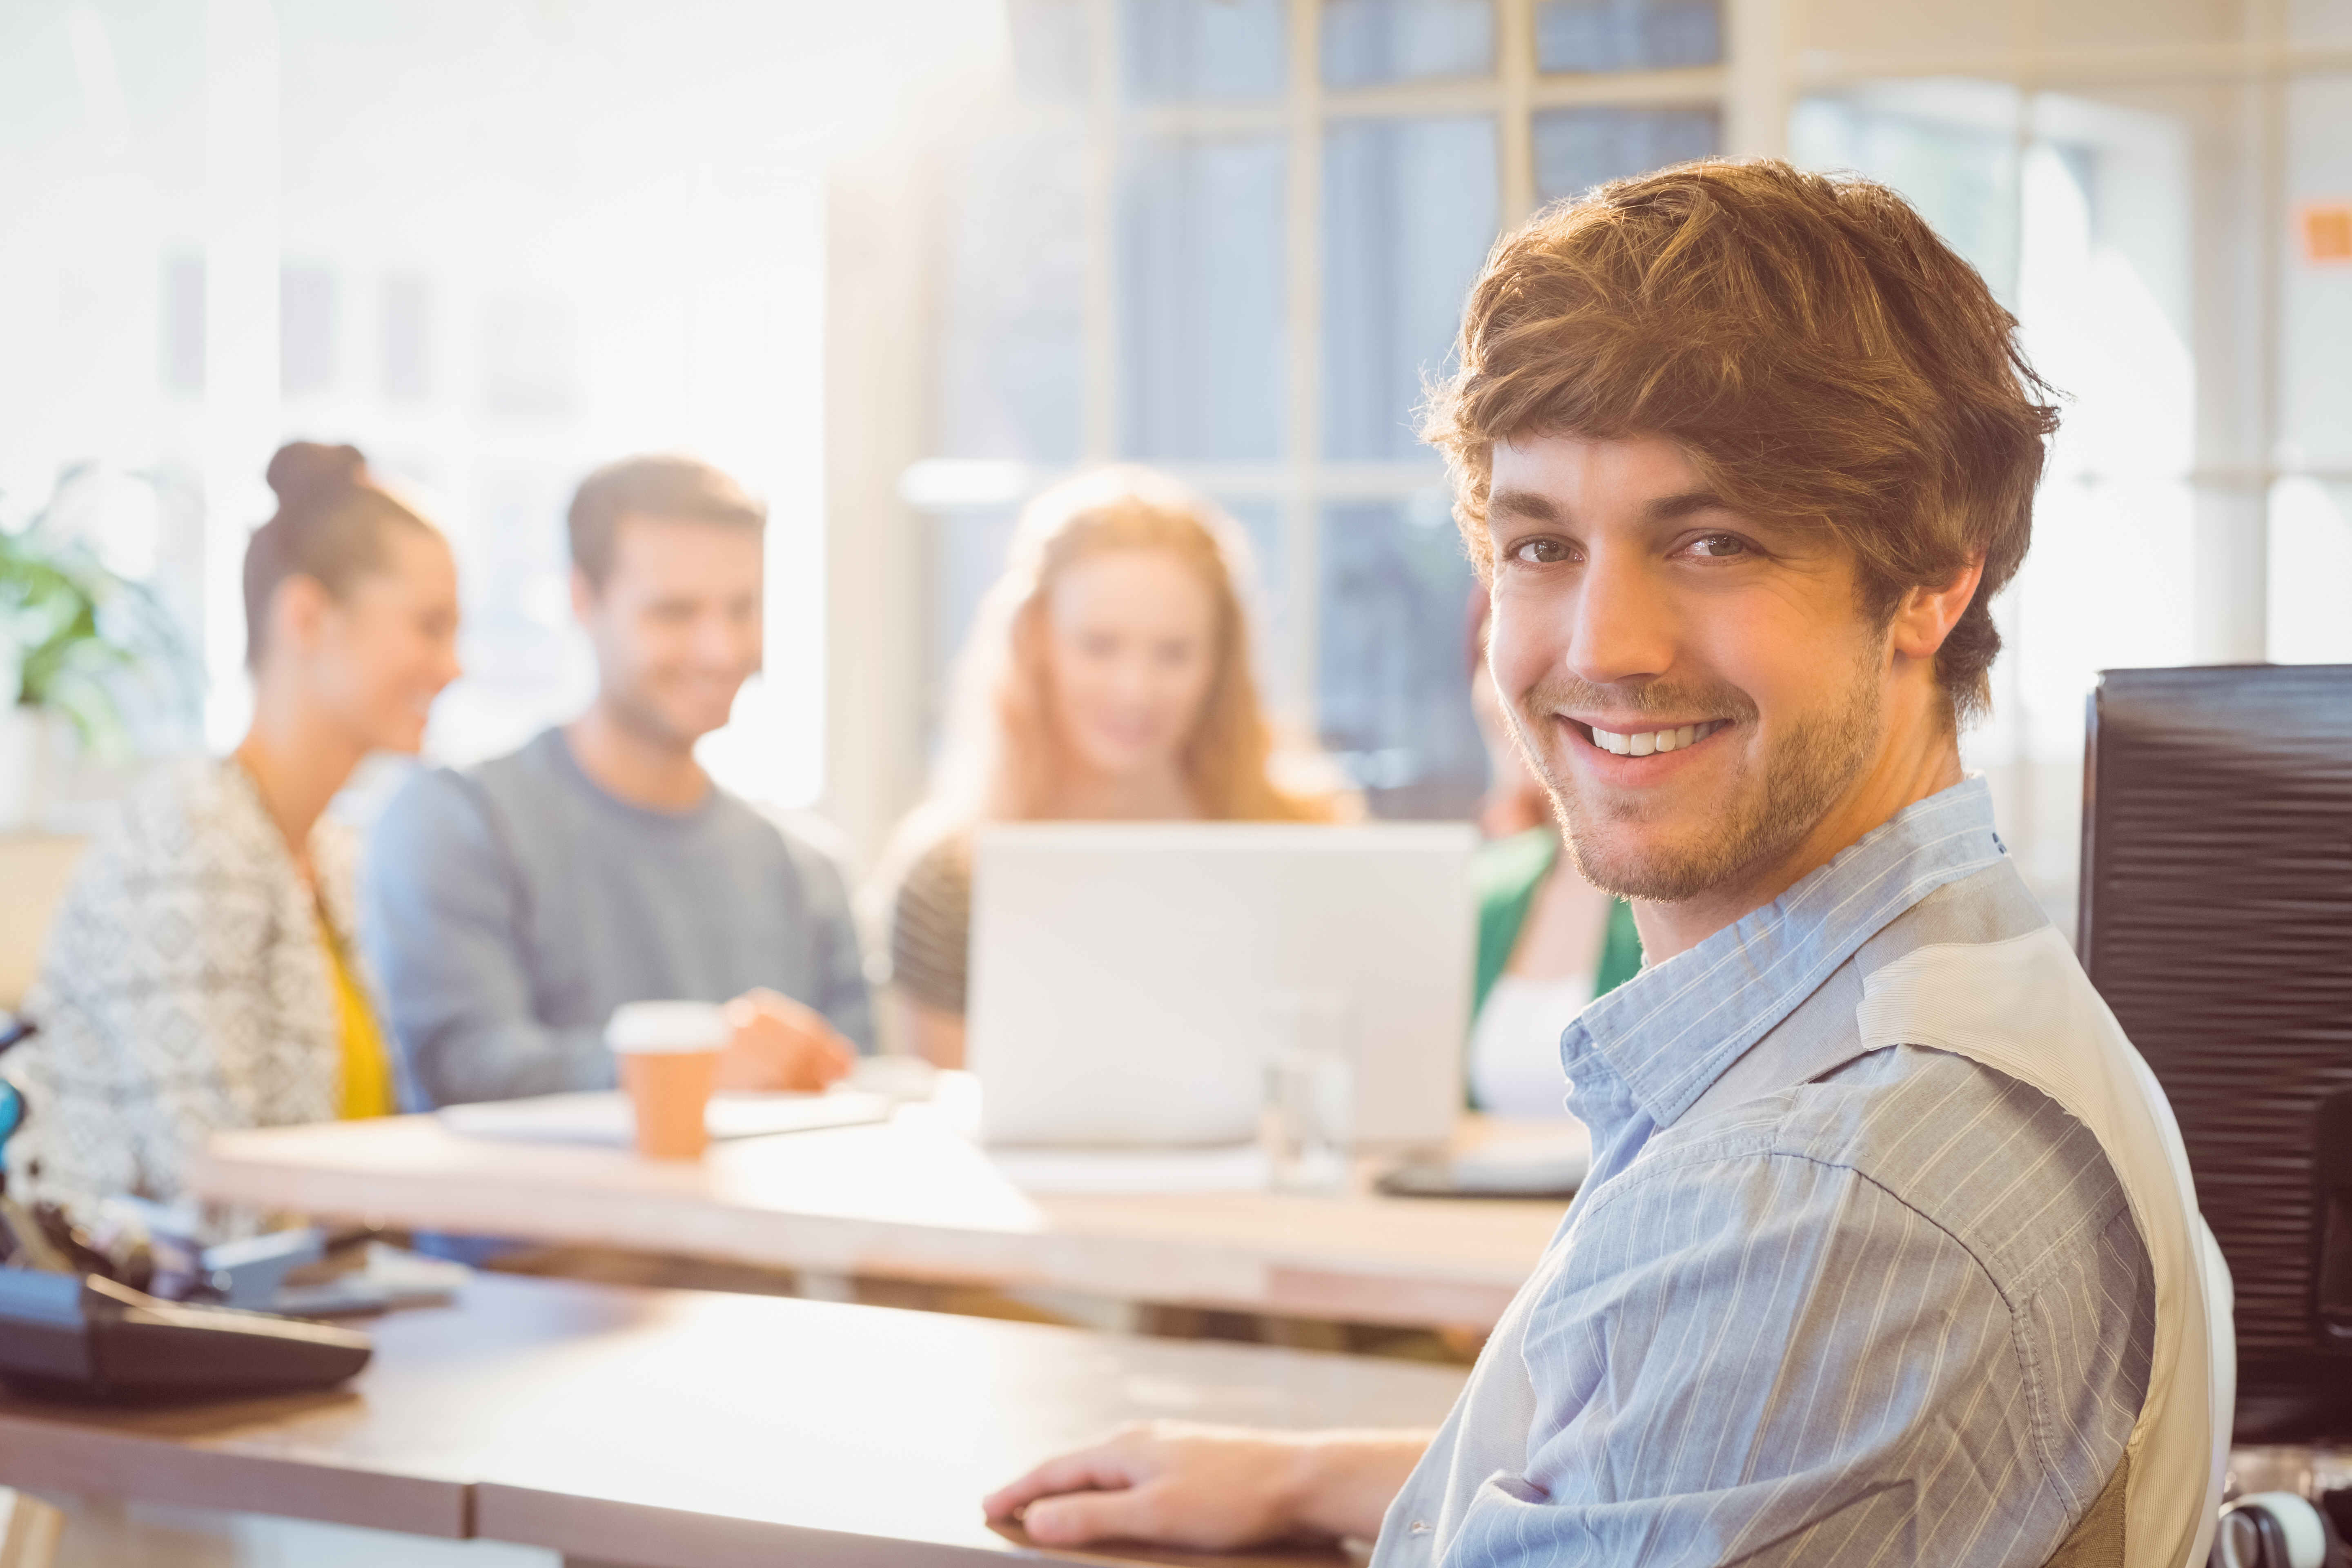 List of things Employers should take care of when Onboarding New Hires